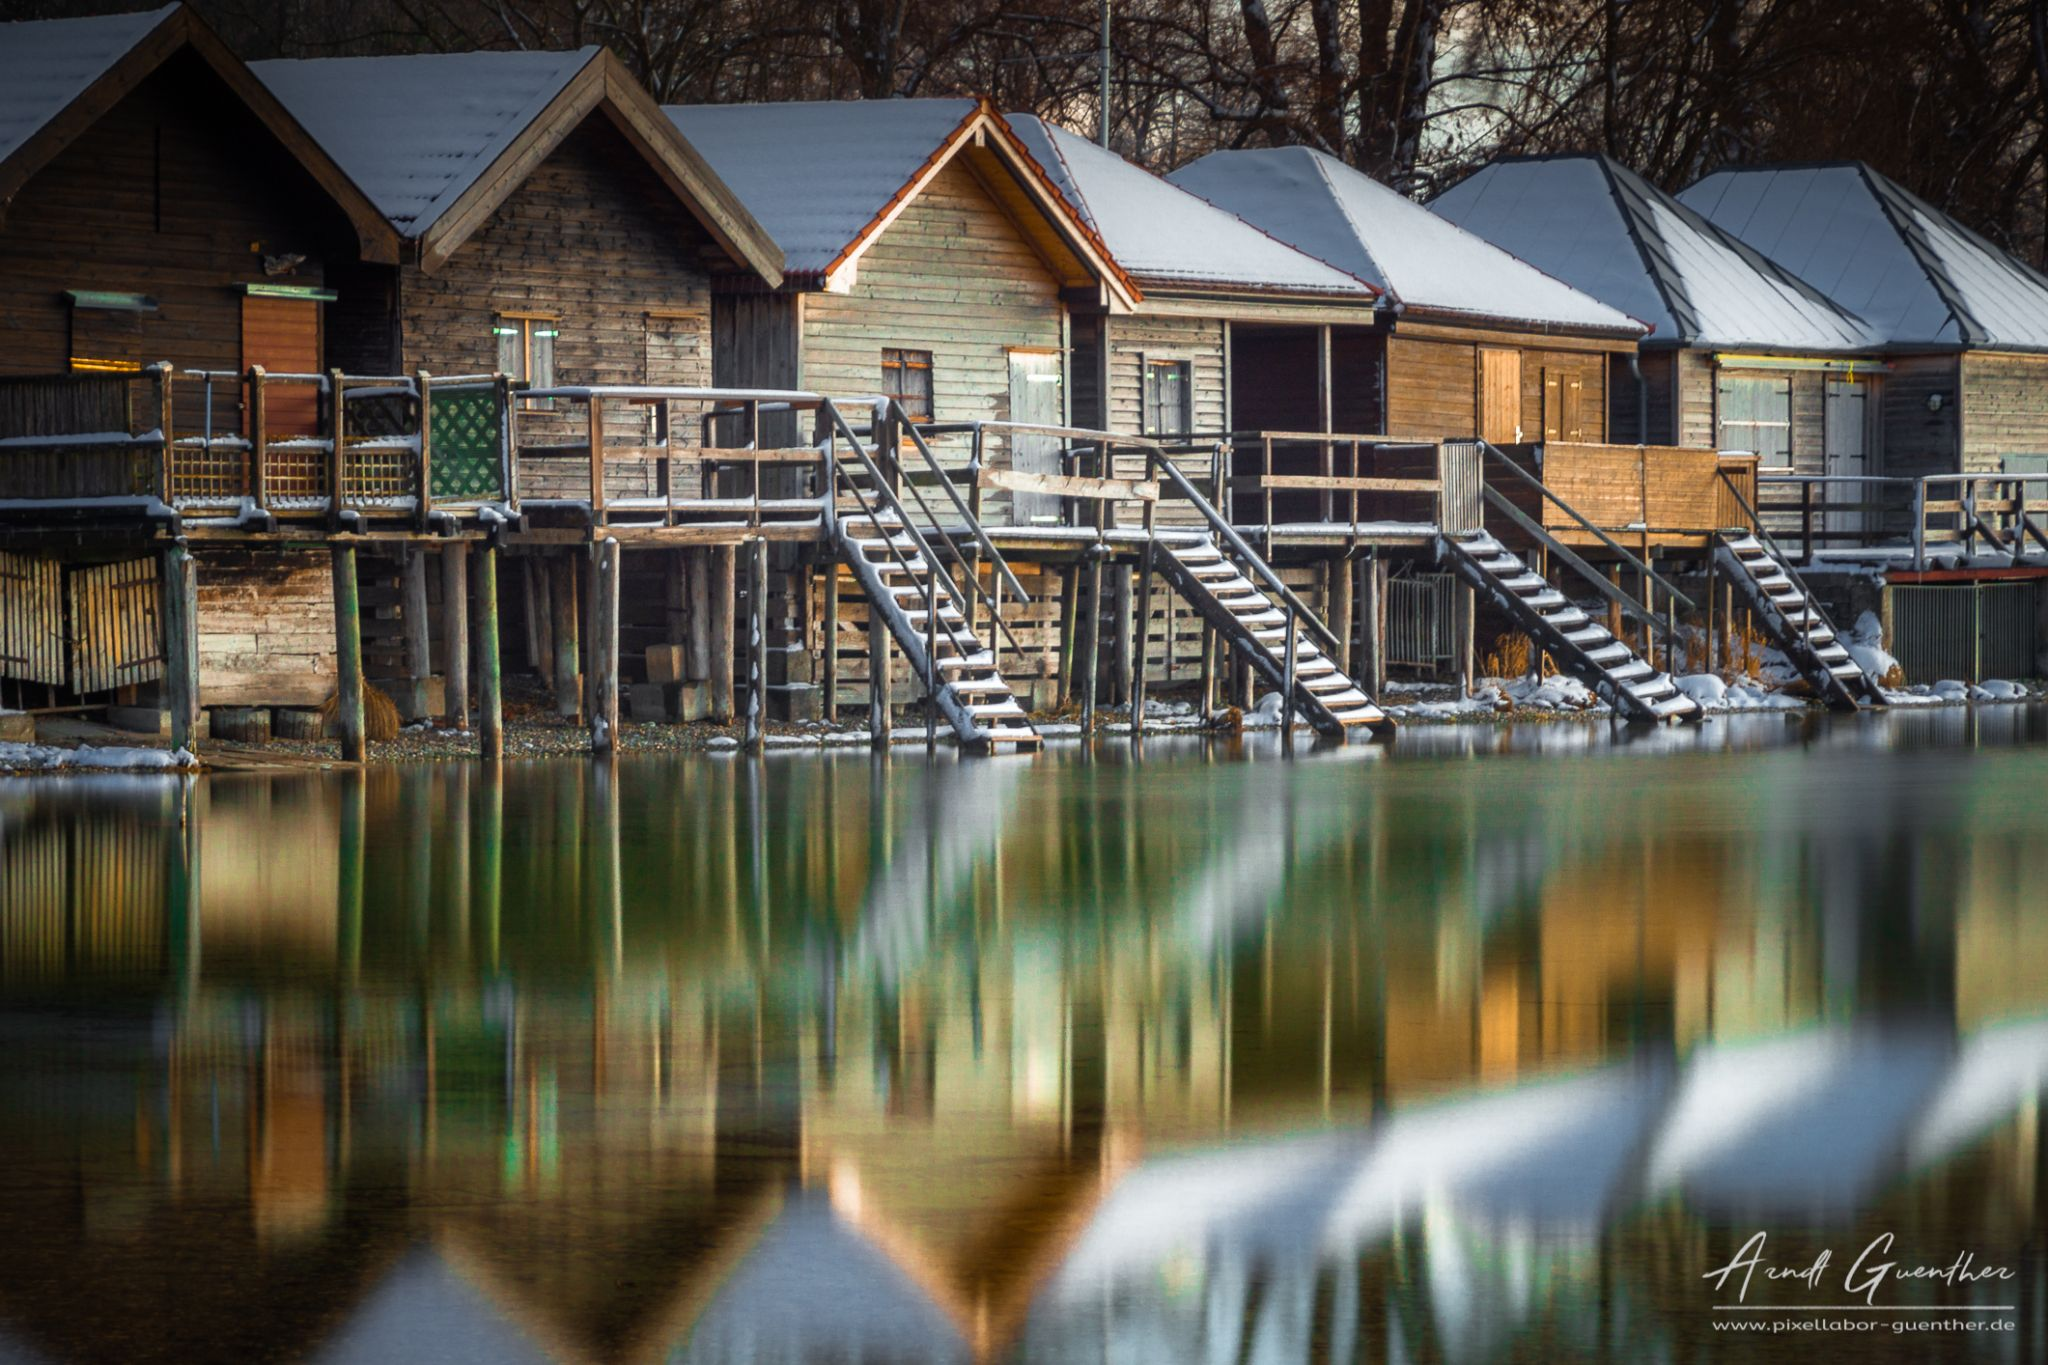 Seven cabins at Lake Ammer, Germany